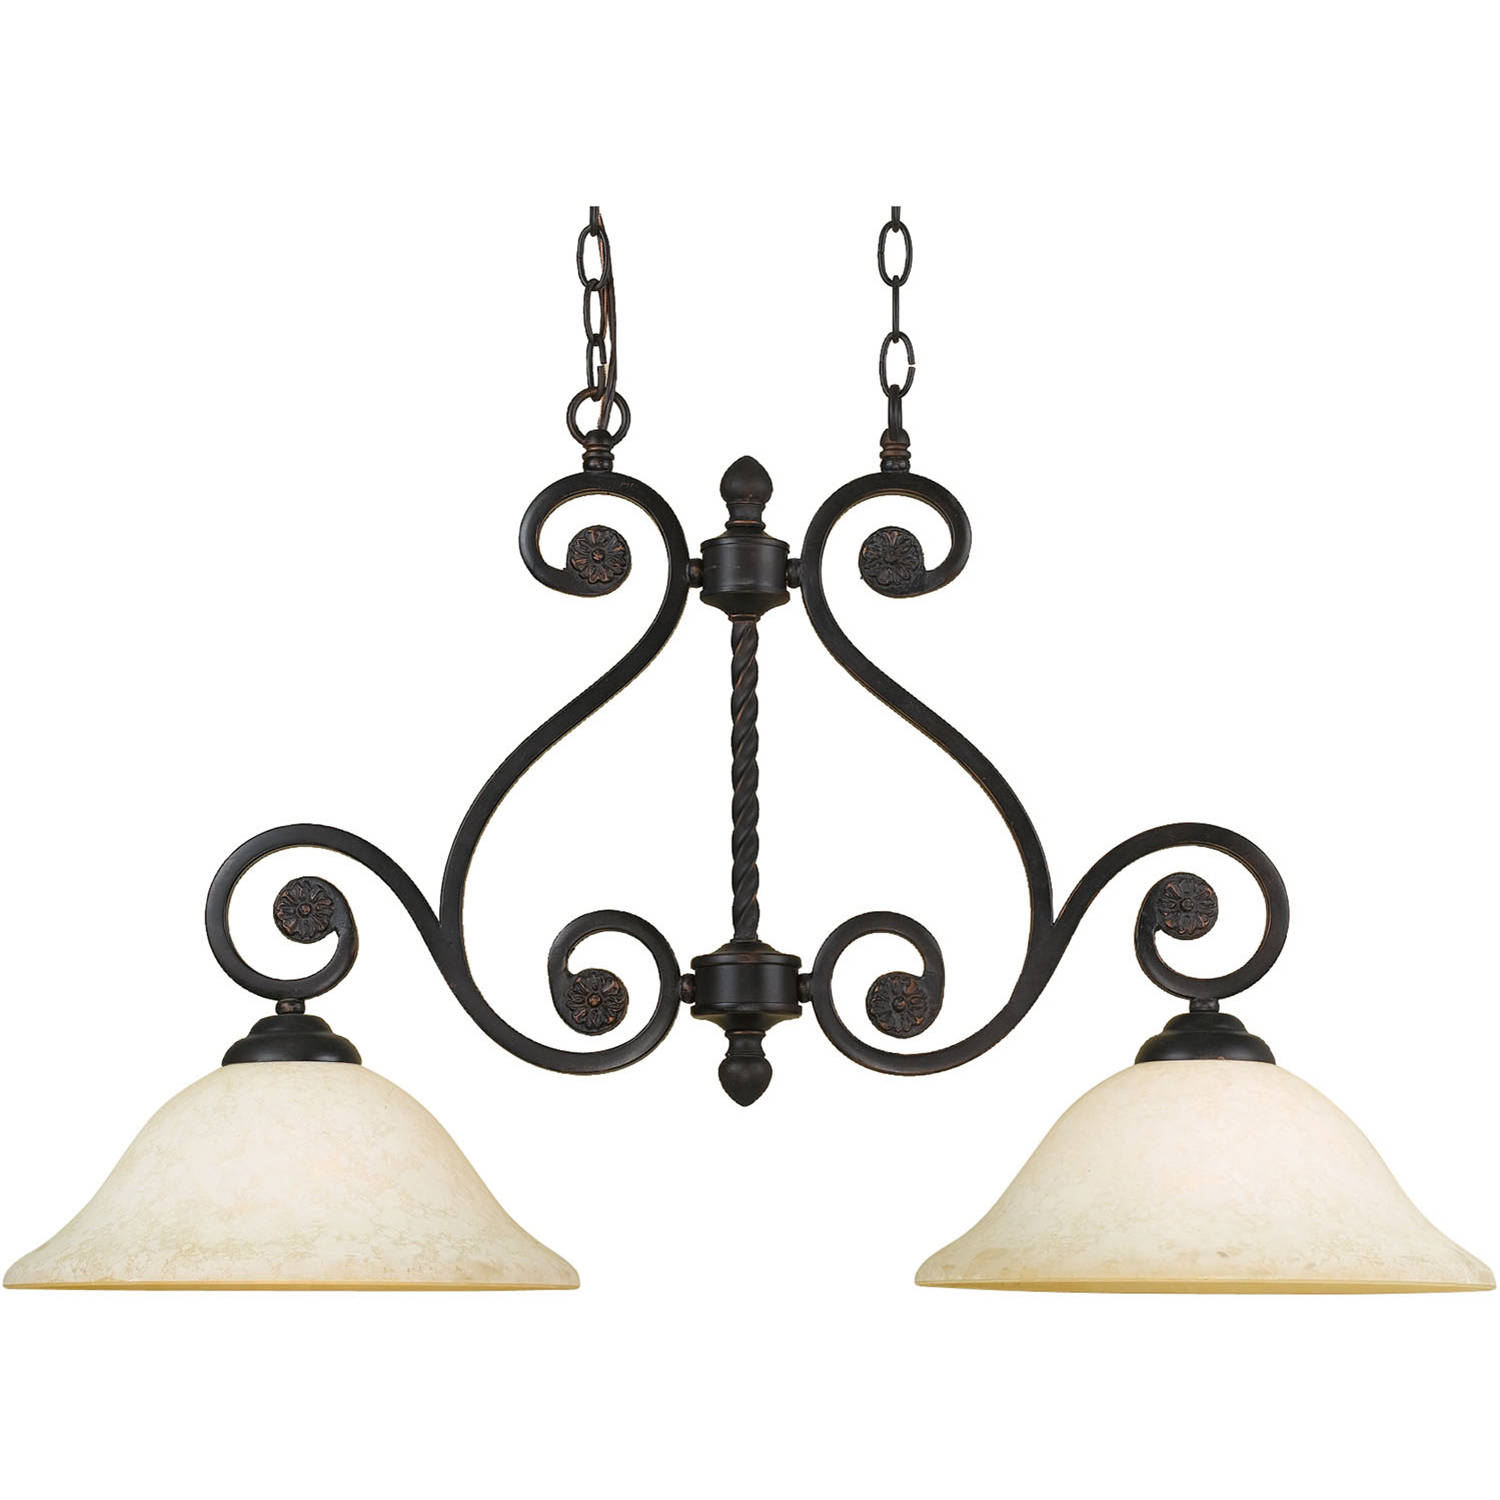 AF Lighting Harmony 2-Light Island Fixture with Frosted Alabaster Glass Shades, Oil-Rubbed Bronze